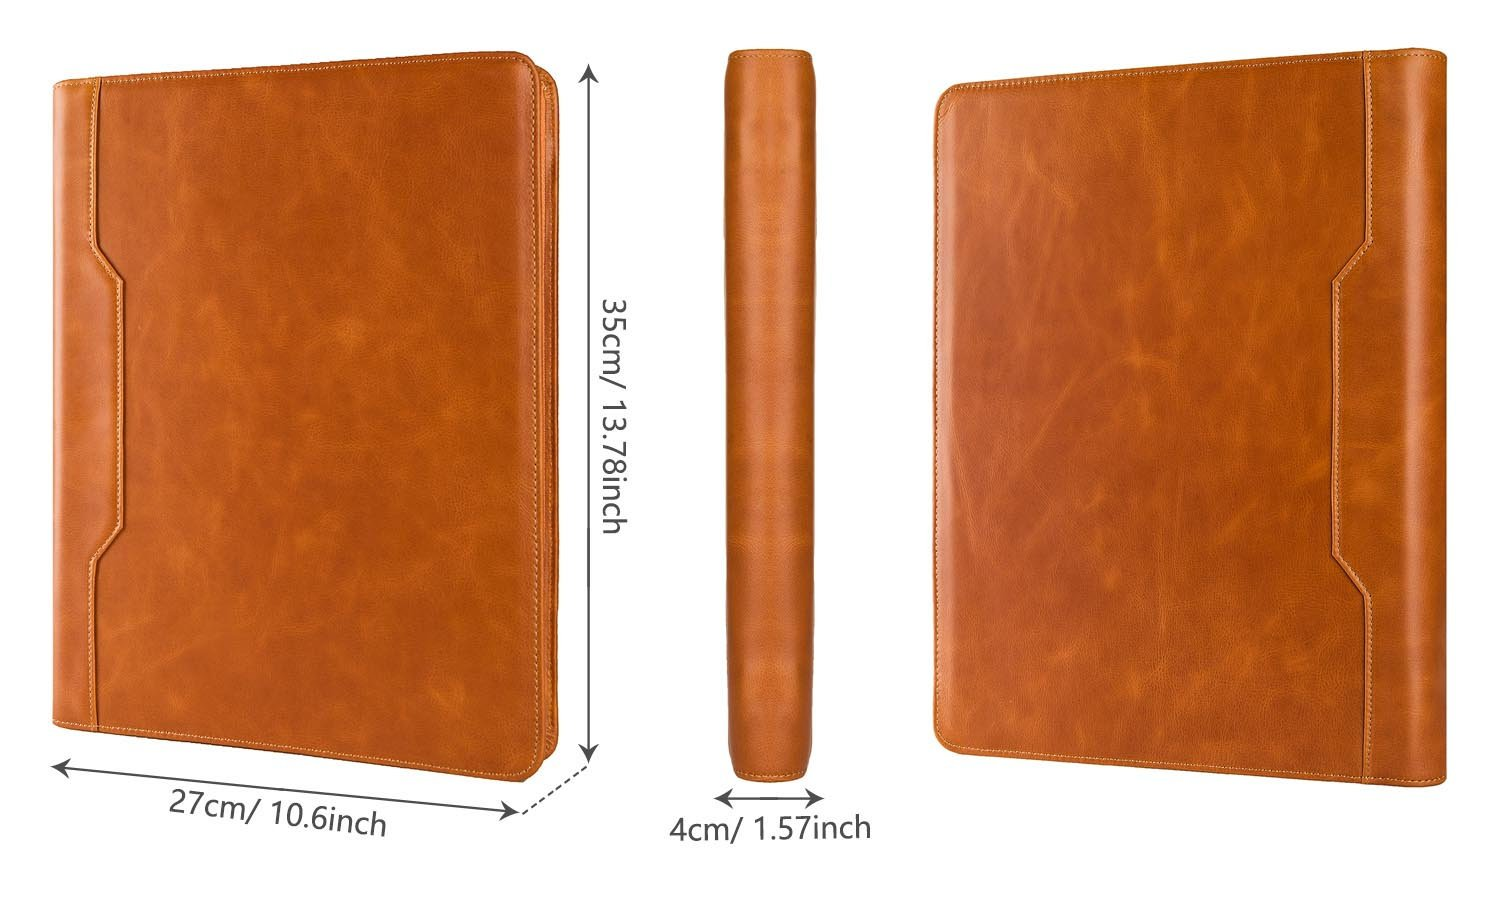 3 Cincin Pengikat Kunci Zip File Folder Organizer Dokumen Tas untuk MacBook Pro 13/Macbook Air 13 ''/ MACBOOK AIR 11